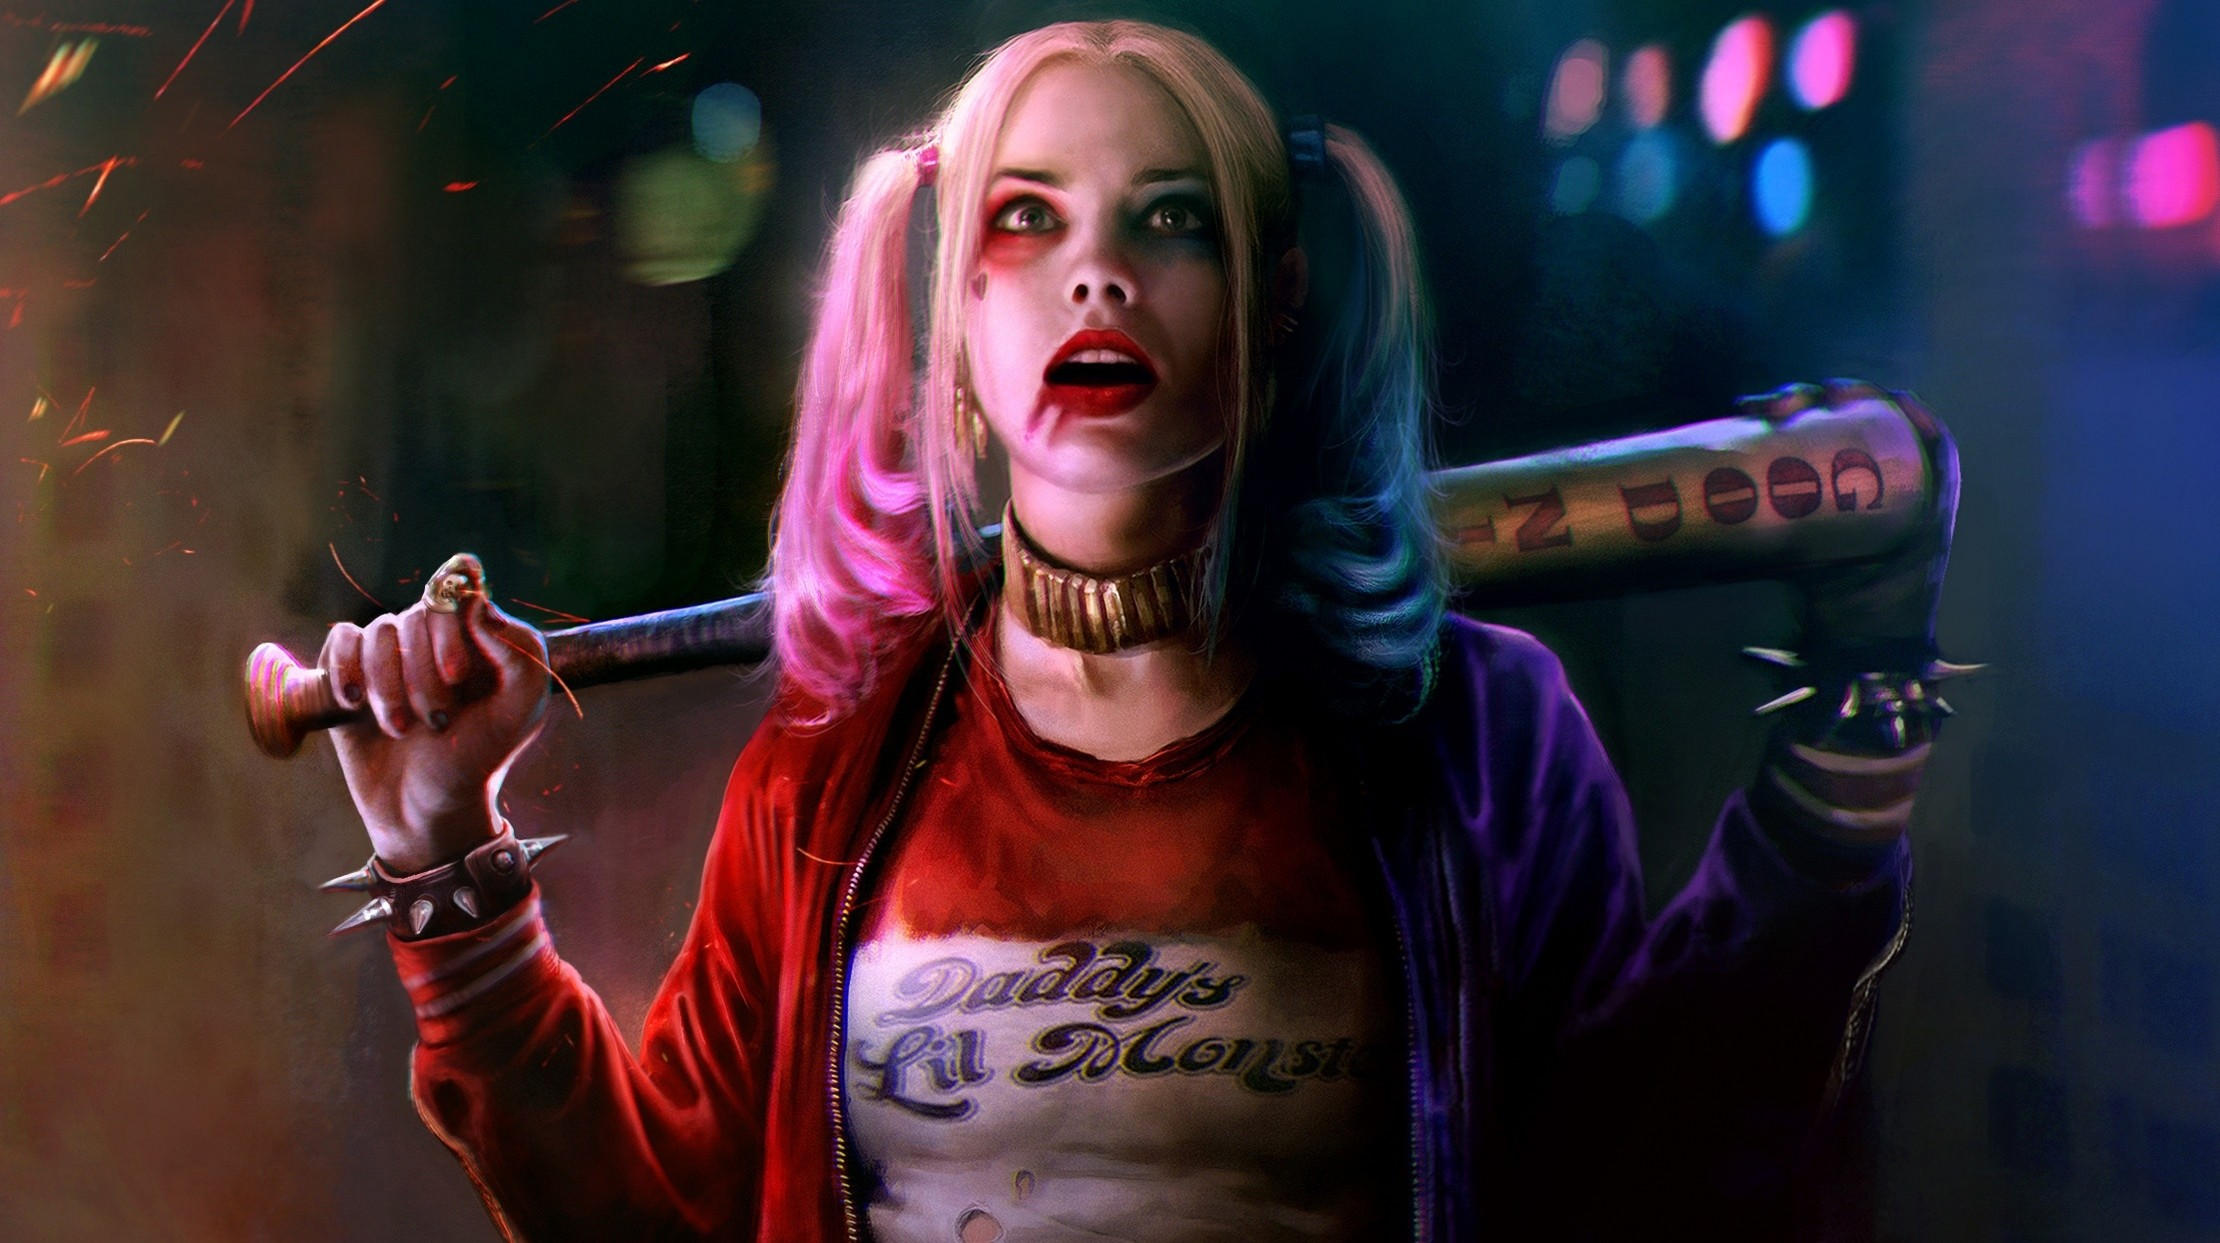 Harley Quinn Wallpaper HD 1080p (78+